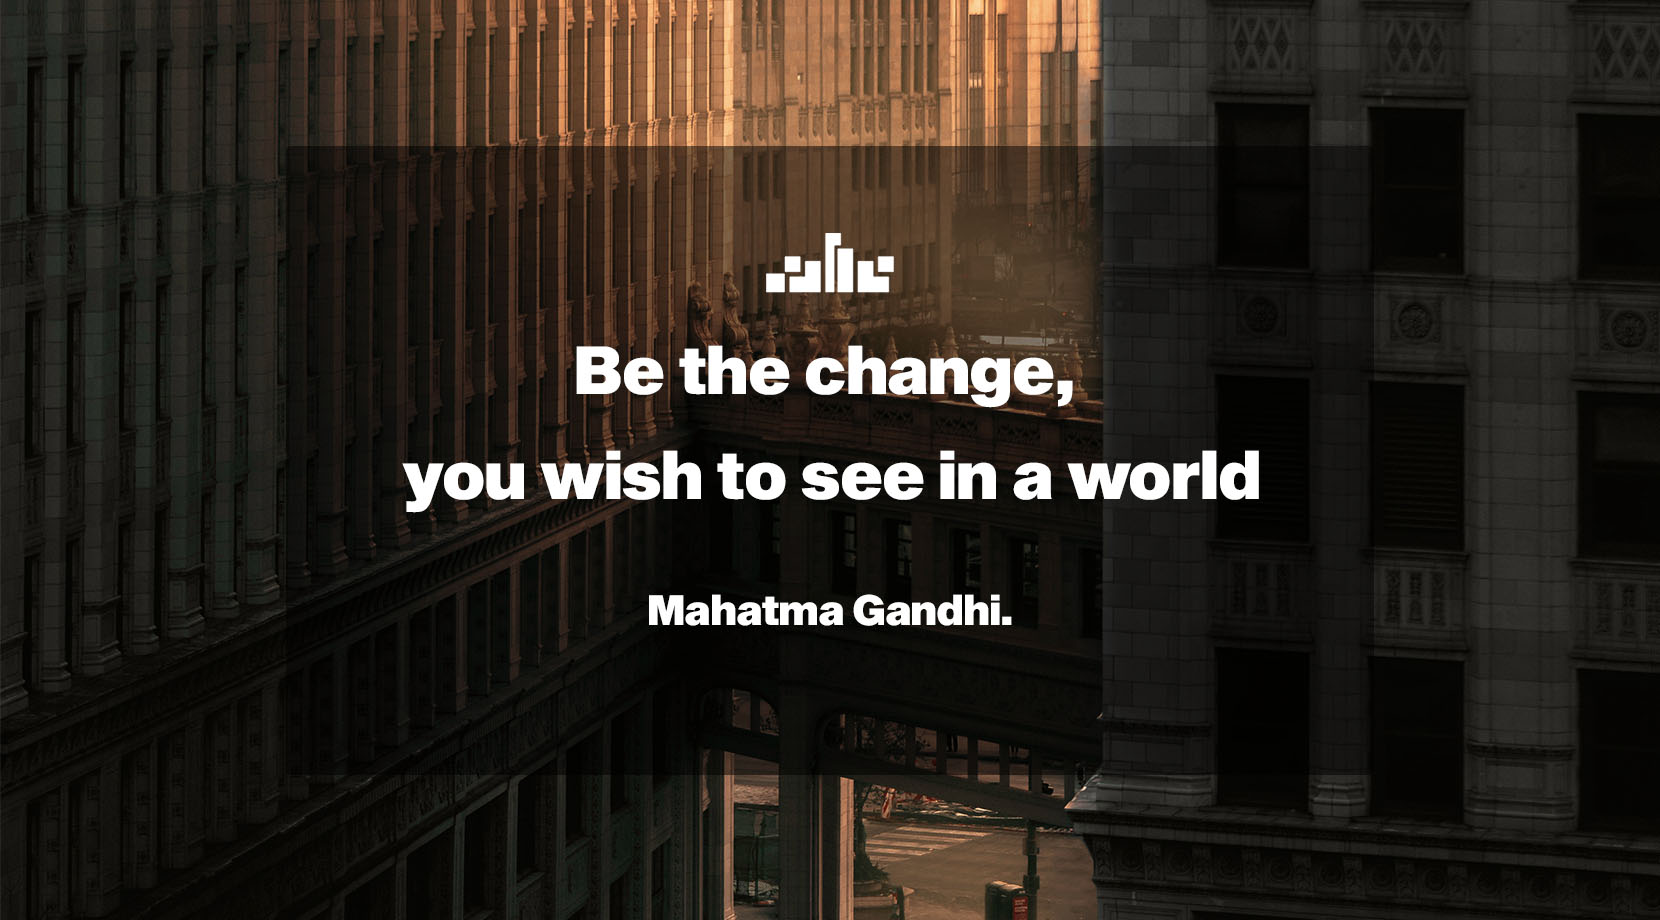 Be the change, you wish to see in a world.- Mahatma Gandhi.